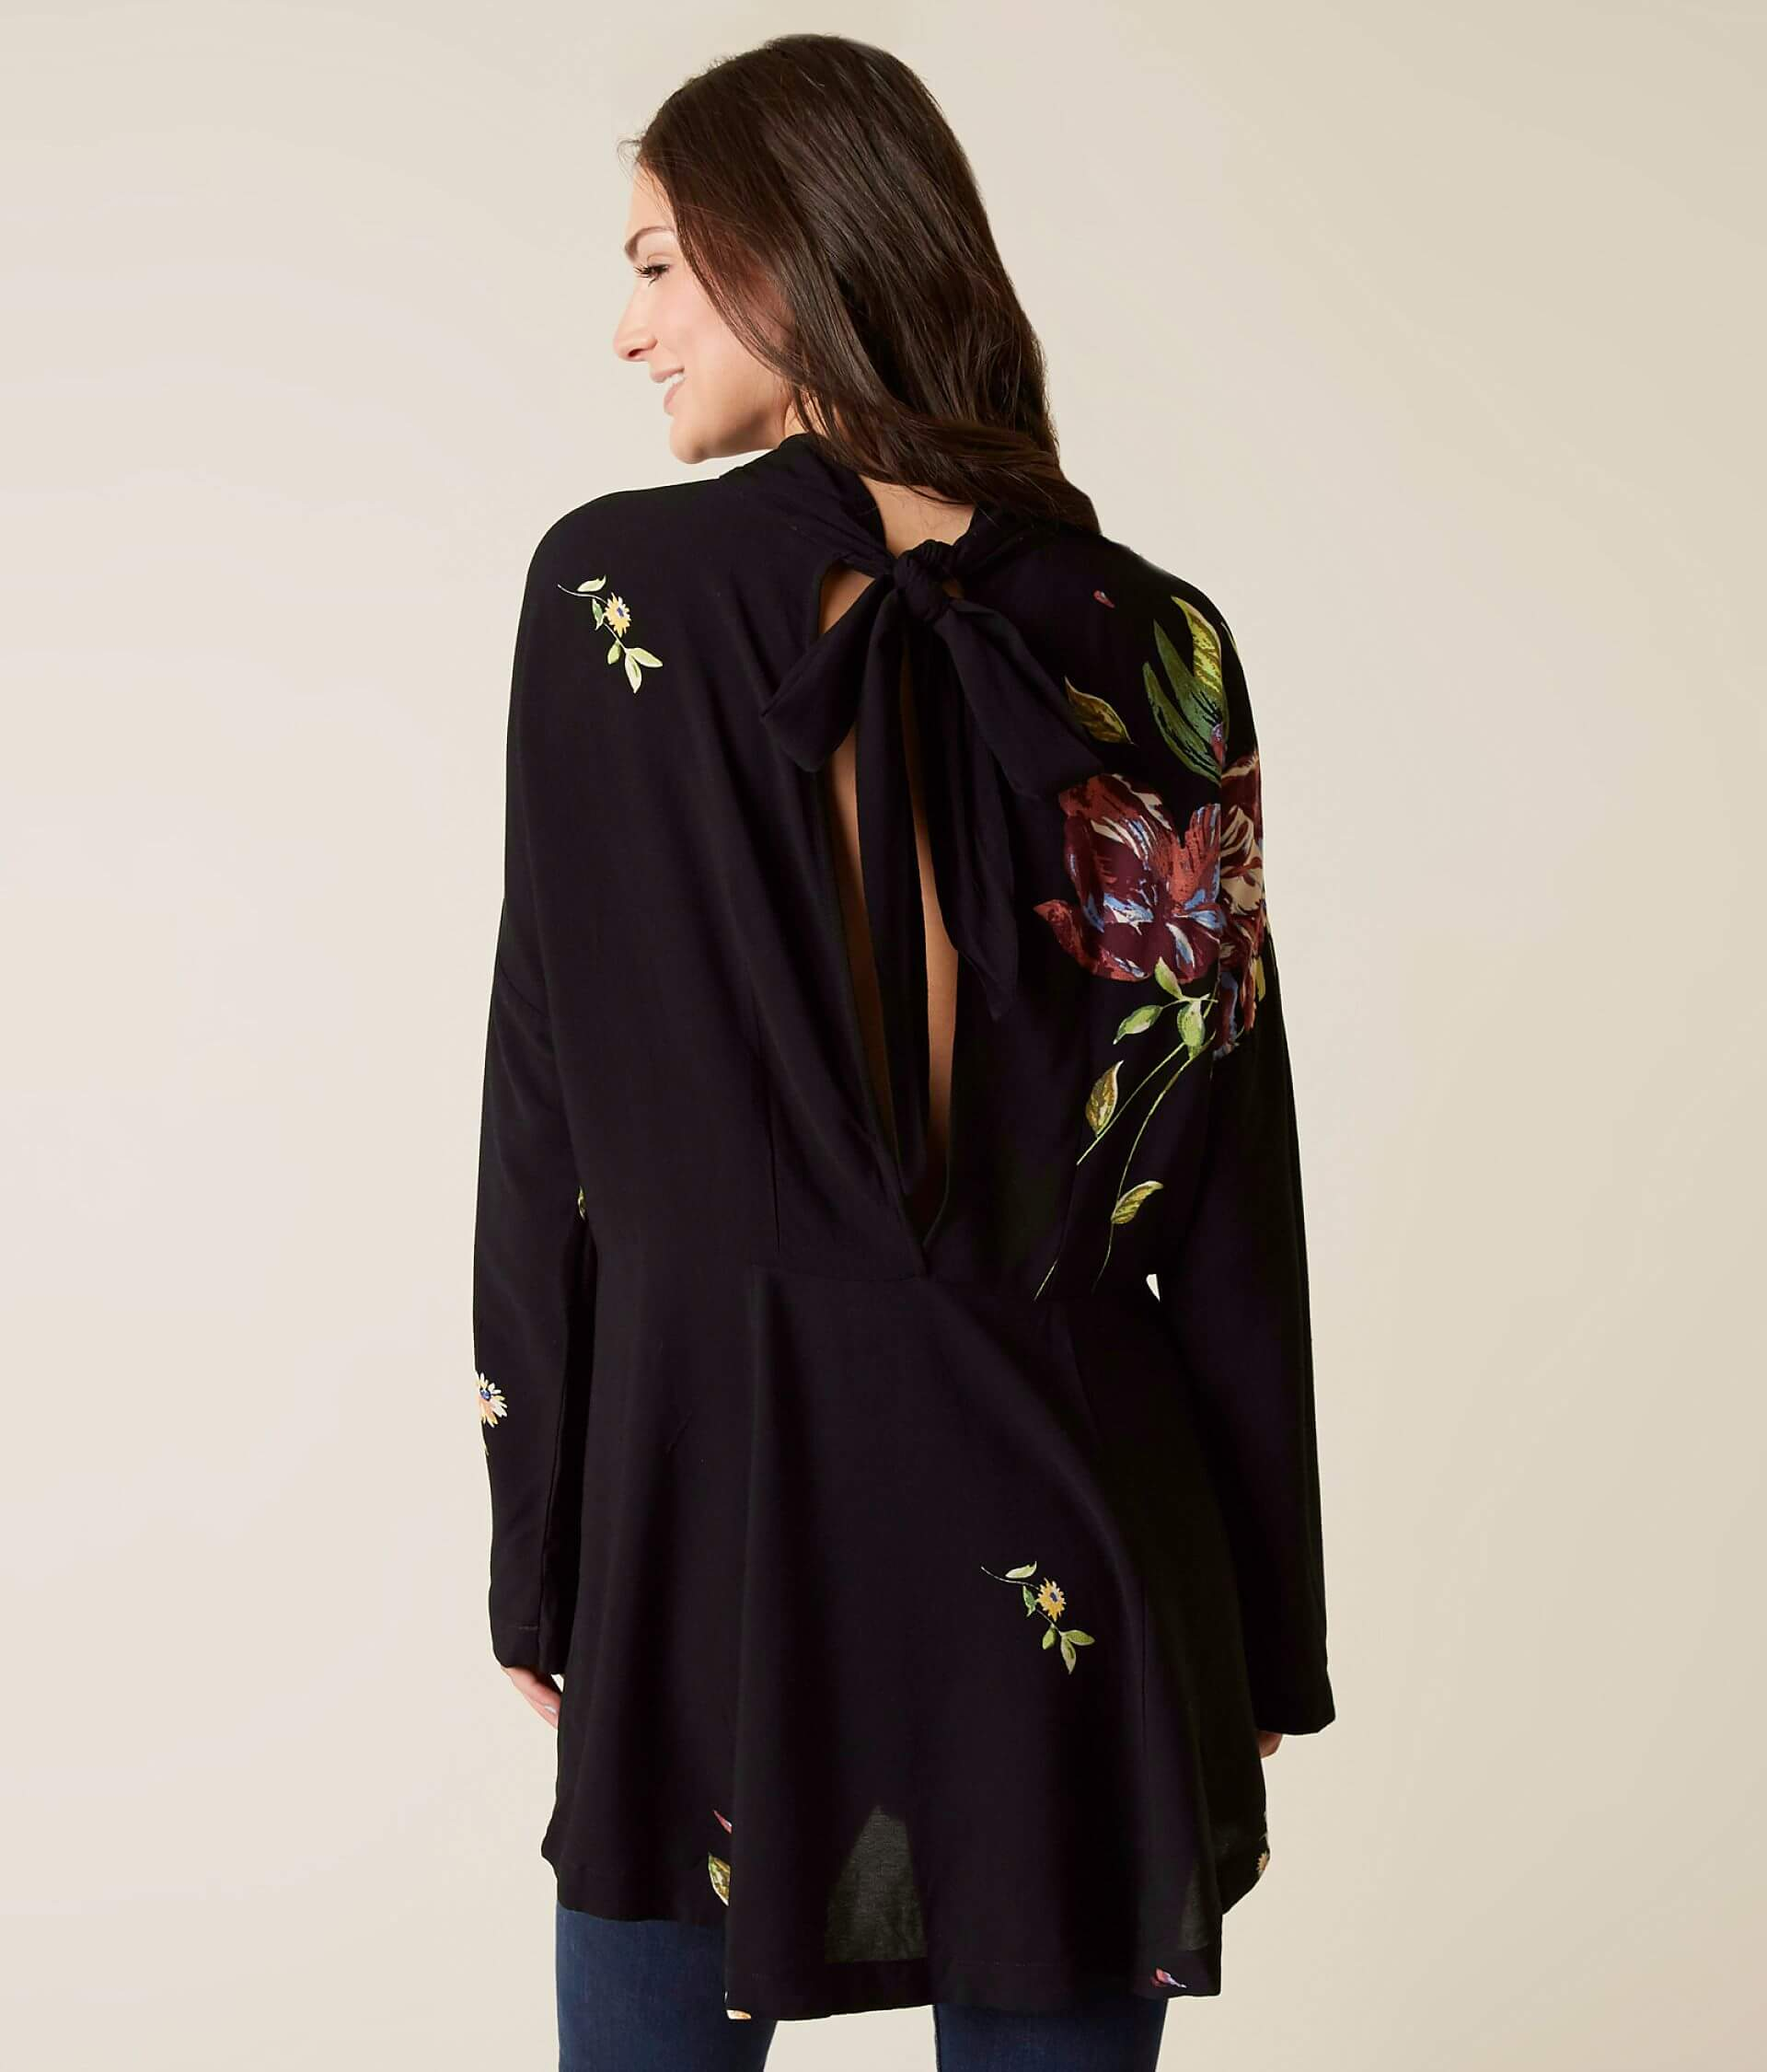 f8641d516f1 Free People Gemma Tunic Top - Women's Shirts/Blouses in Black   Buckle